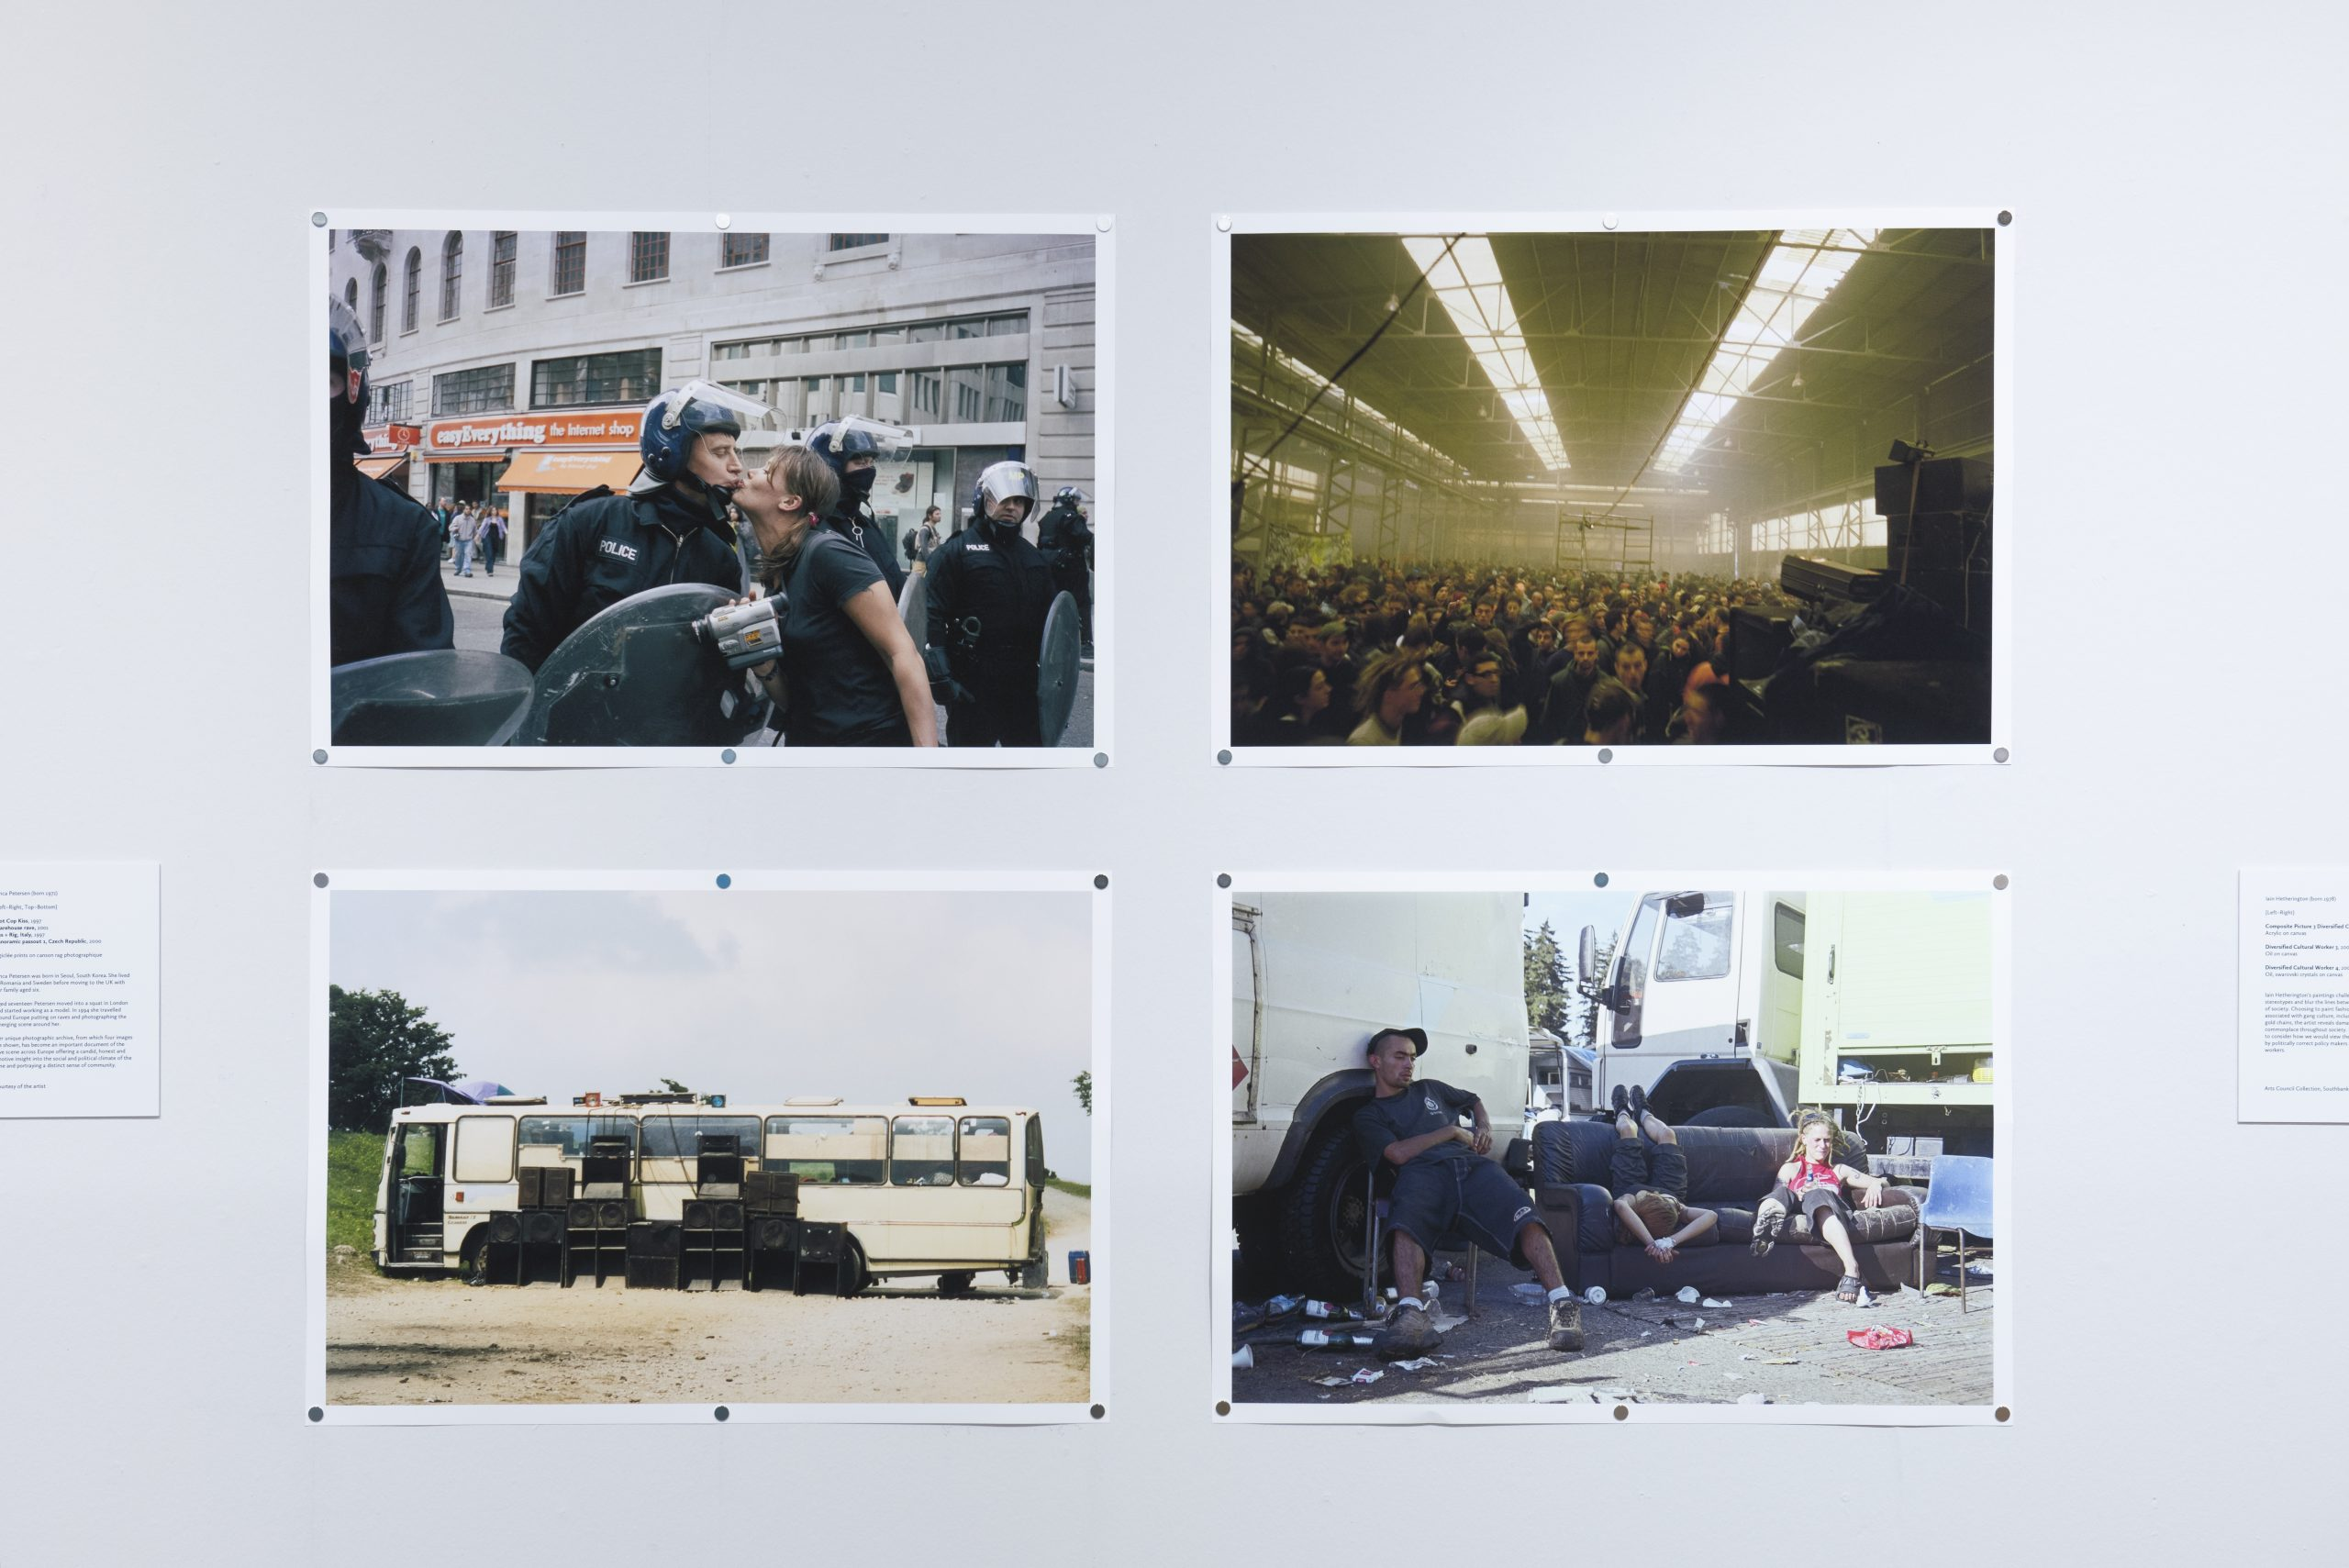 Riot Cop Kiss, 1997 Warehouse rave, 2001 Bus + Rig, Italy, 1997 Panoramic passout 1, Czech Republic, 2000 Logo